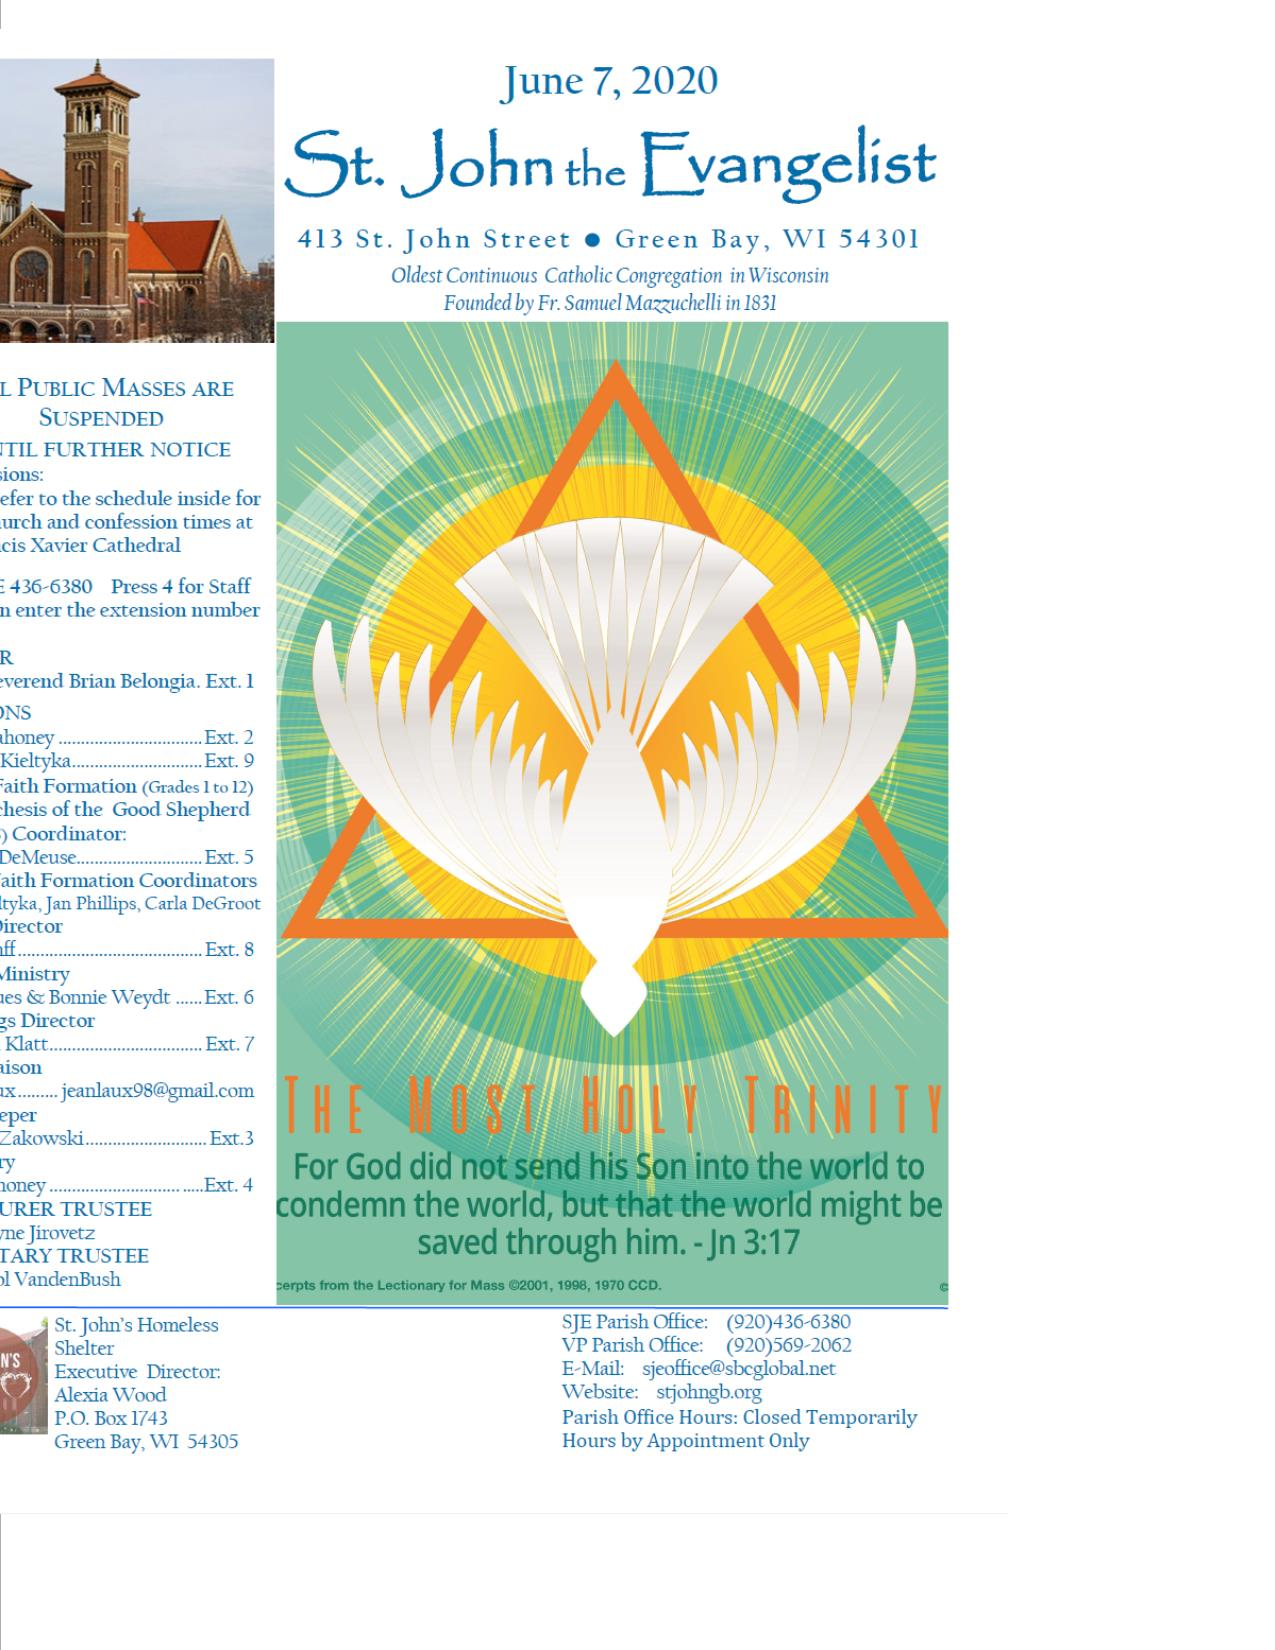 St John the Evangelist: Oldest Continuous Catholic Congregation in